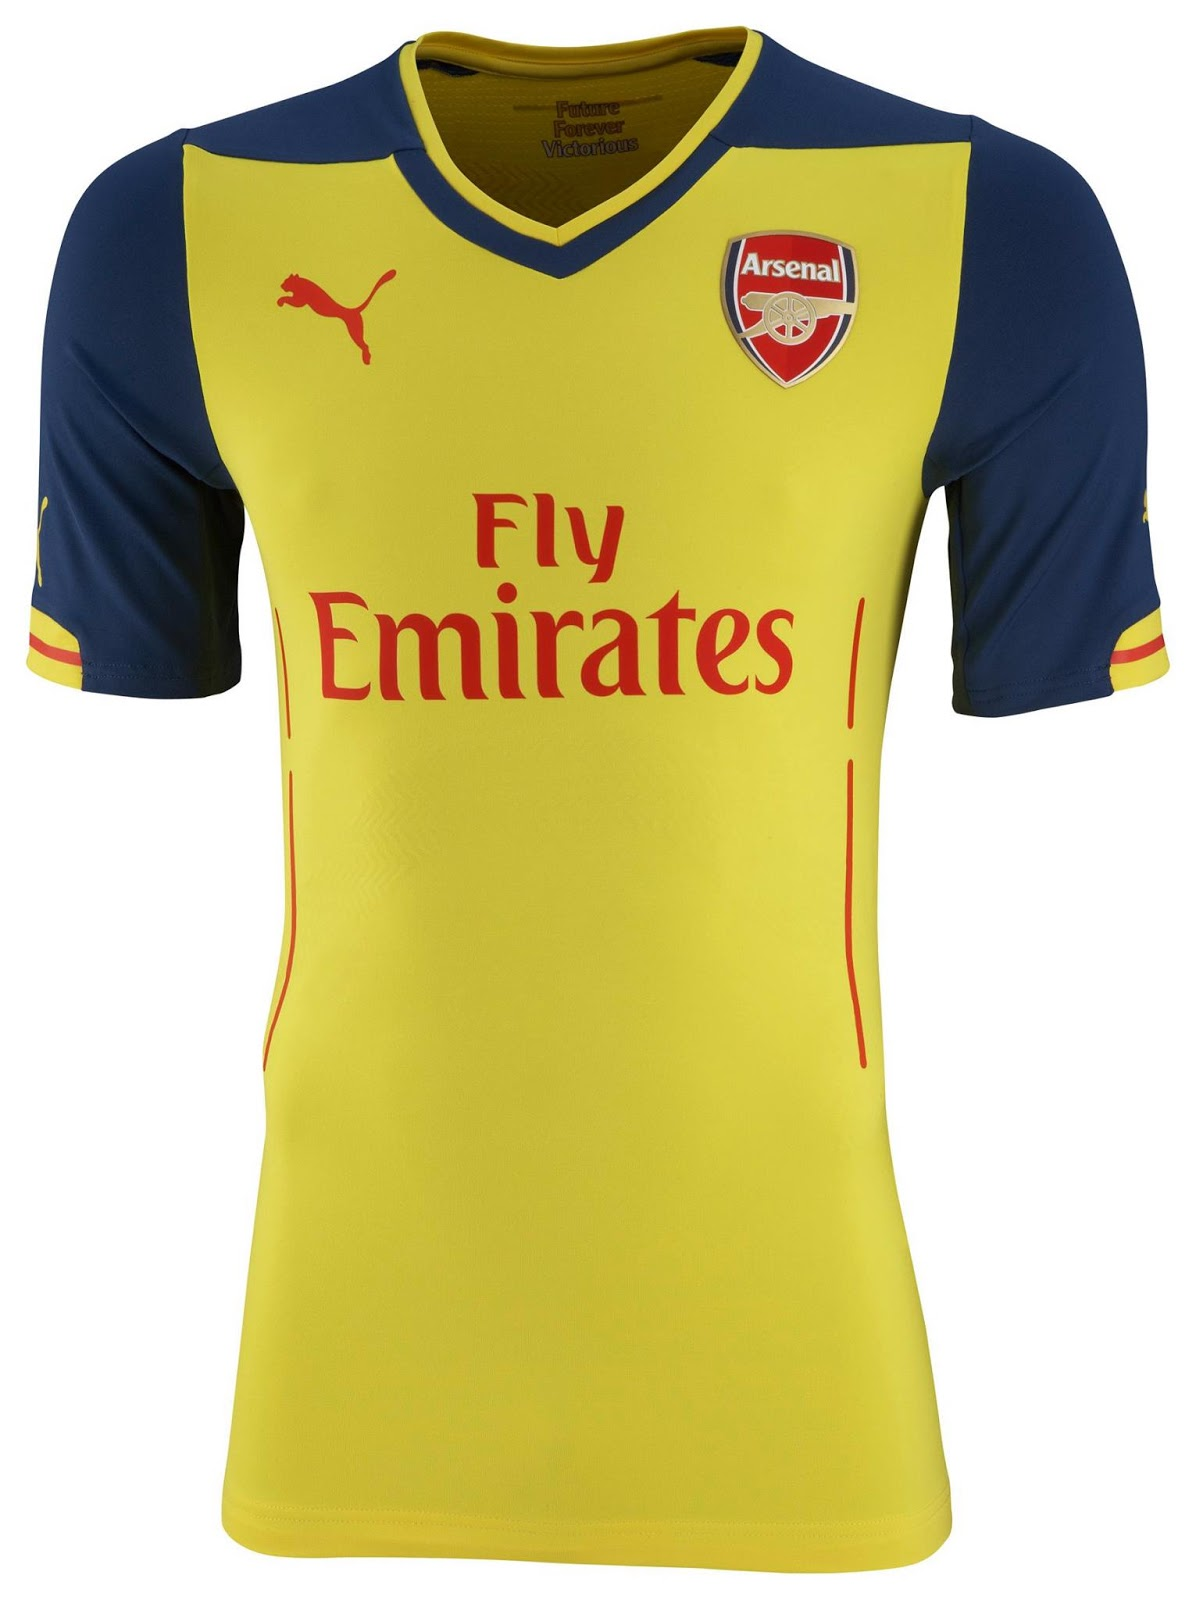 Arsenal-14-15-Away-Kit.jpg